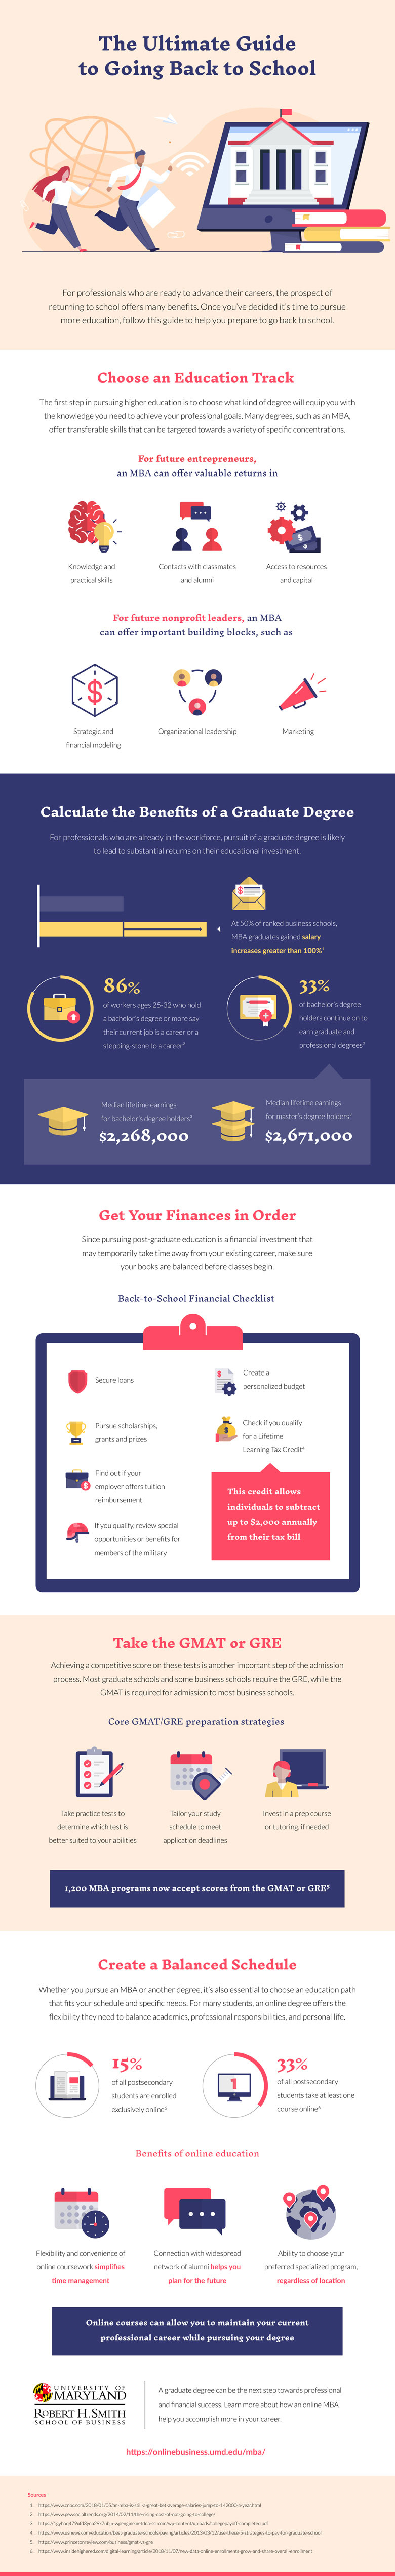 An infographic about continuing education and the steps to take to ensure success by UMD Smith School of Business.